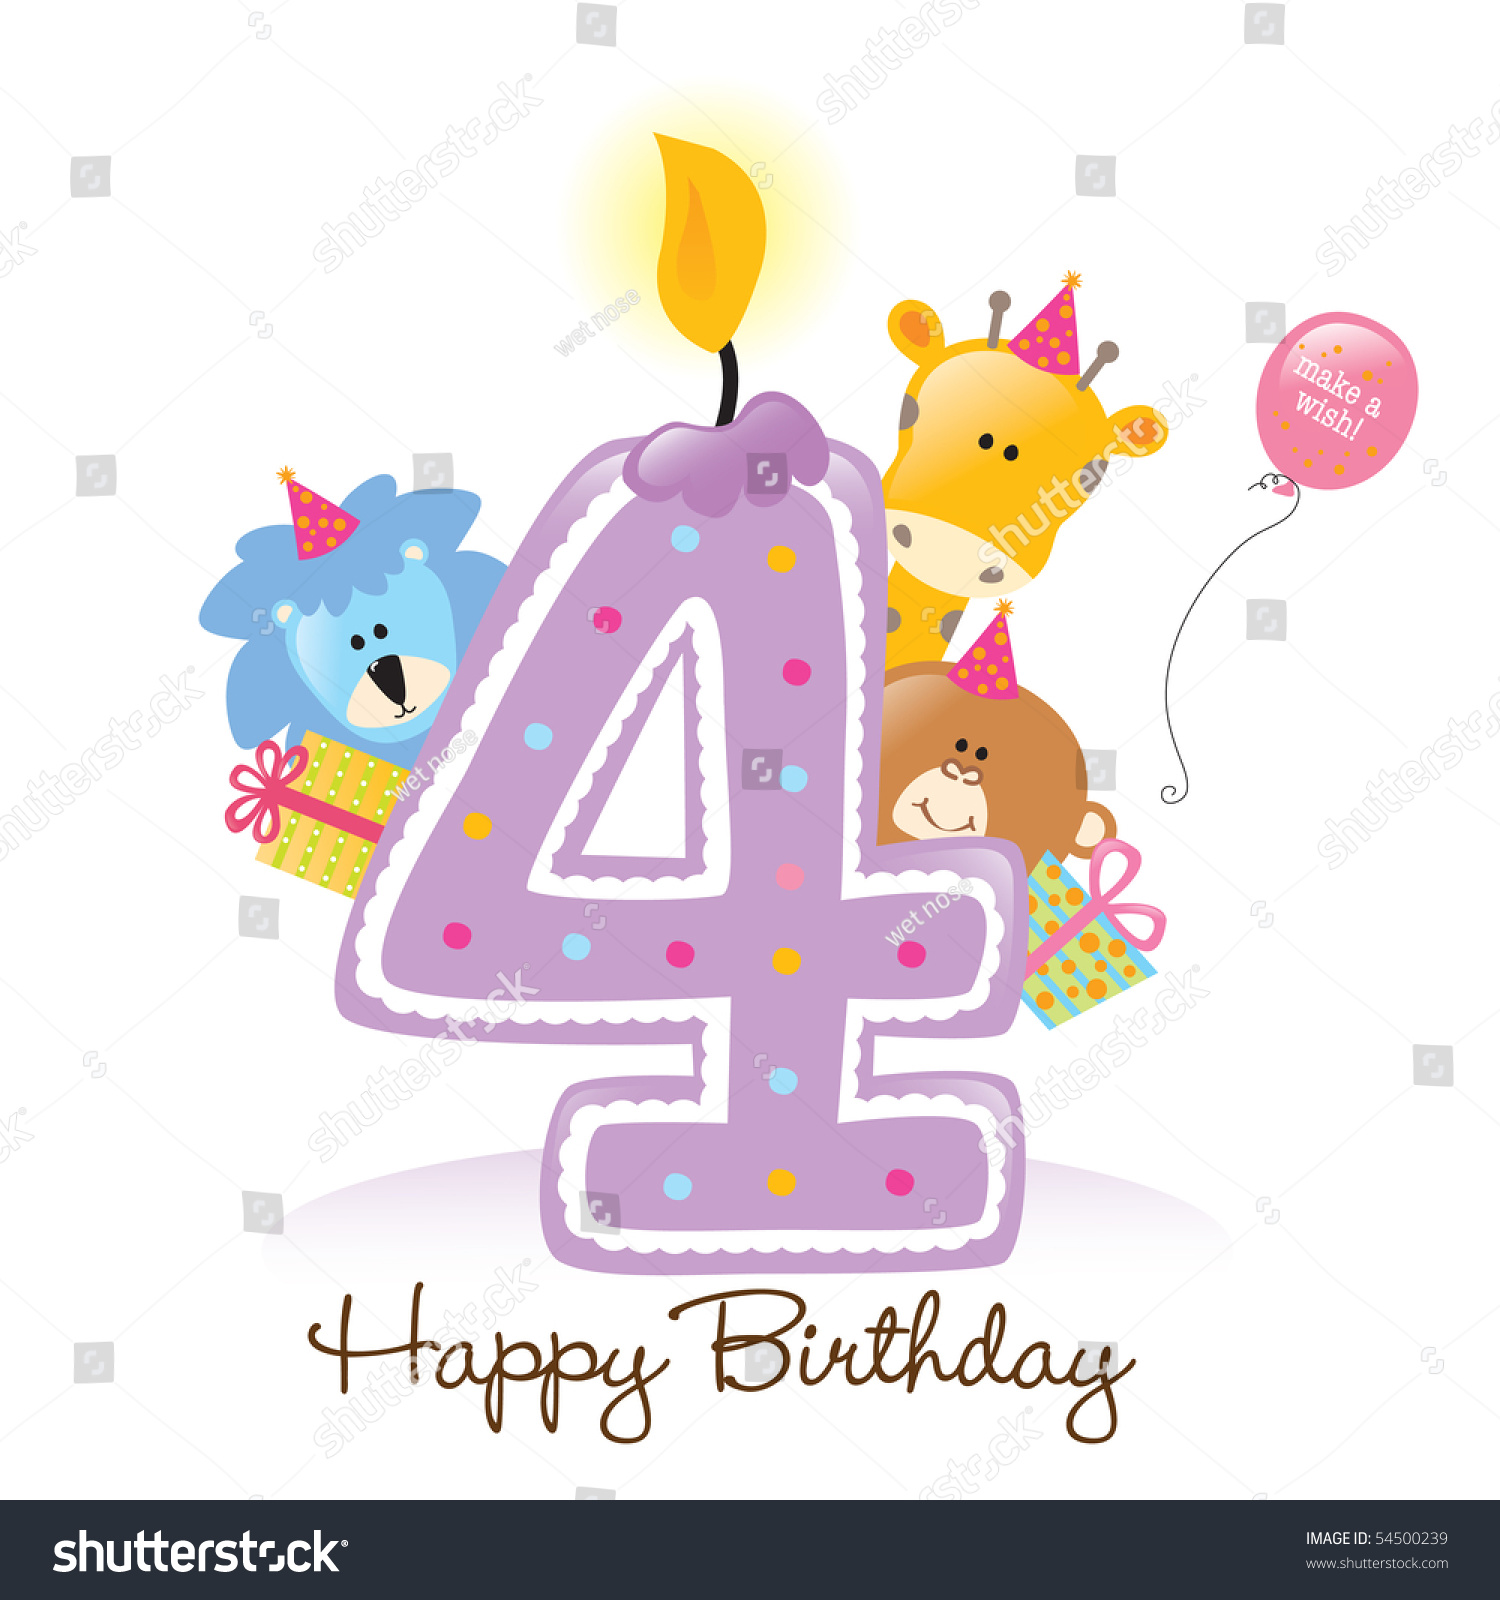 First Birthday Candle With Animals Stock Photo: Jpeg Happy Birthday Candle And Animals Isolated Over White